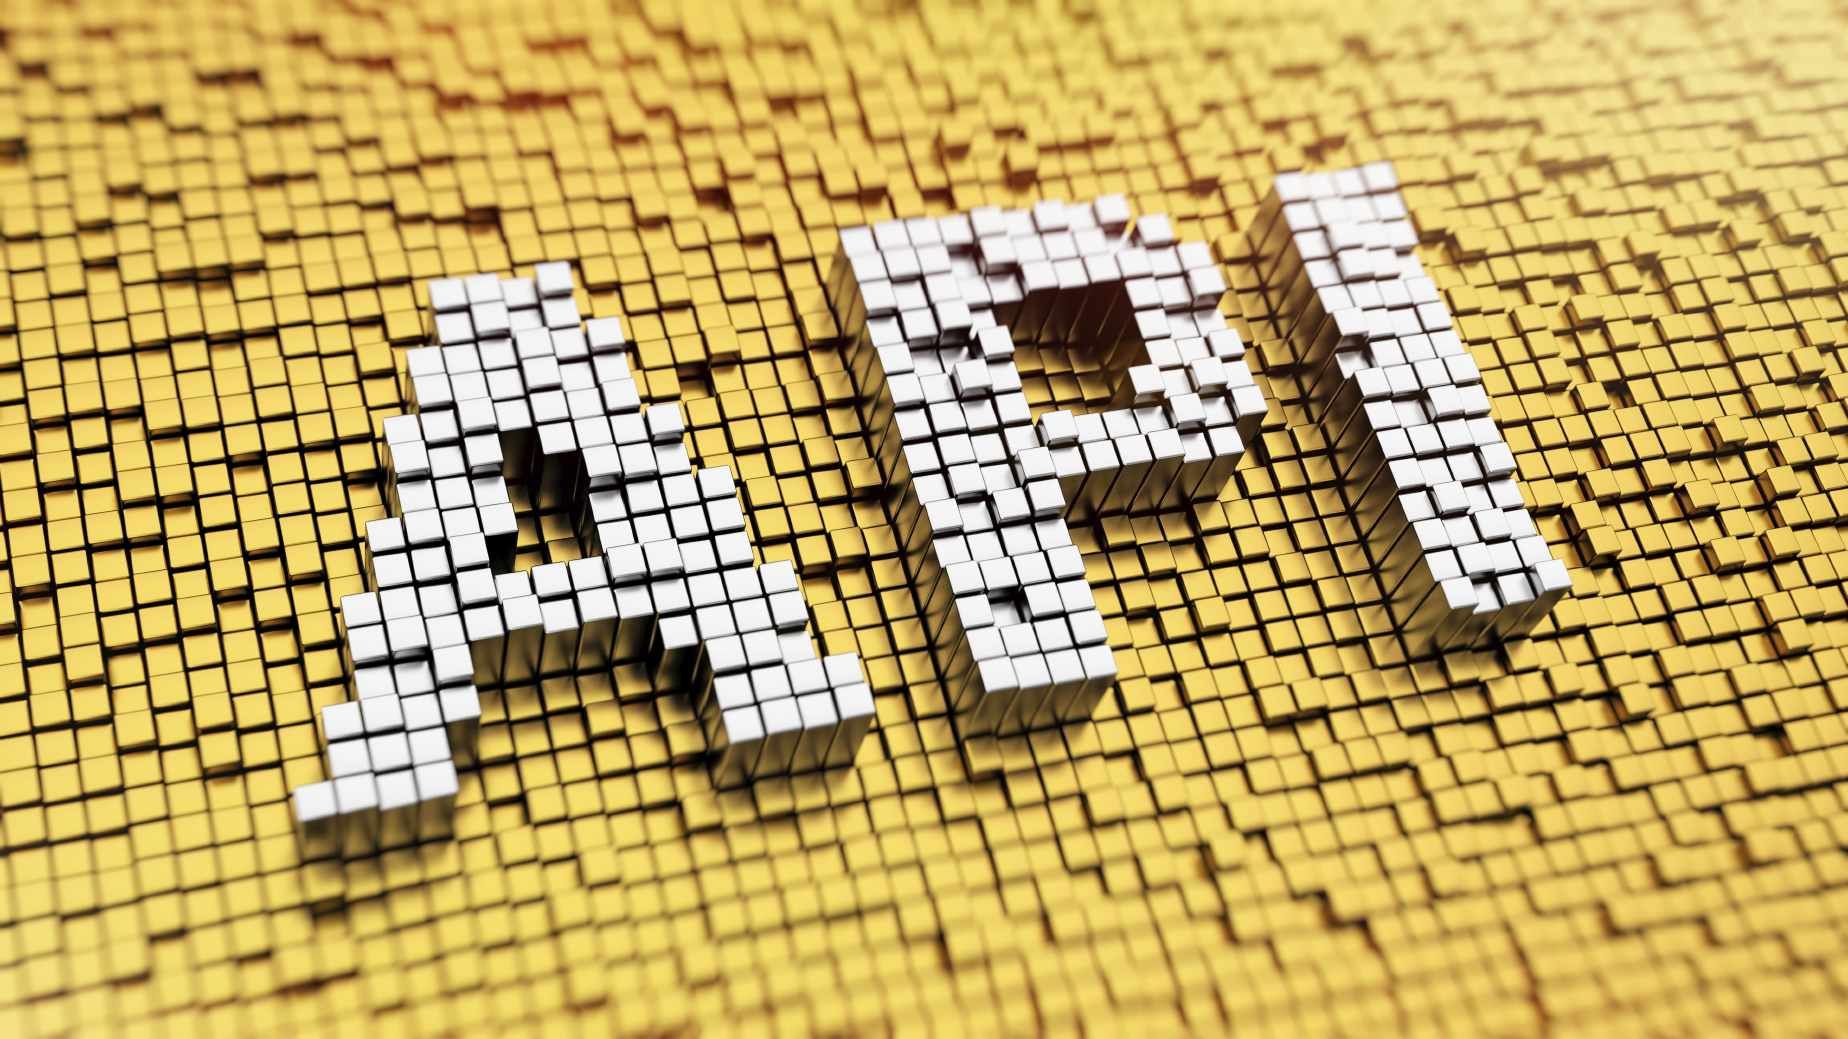 Pixelated acronym API made from cubes, mosaic pattern